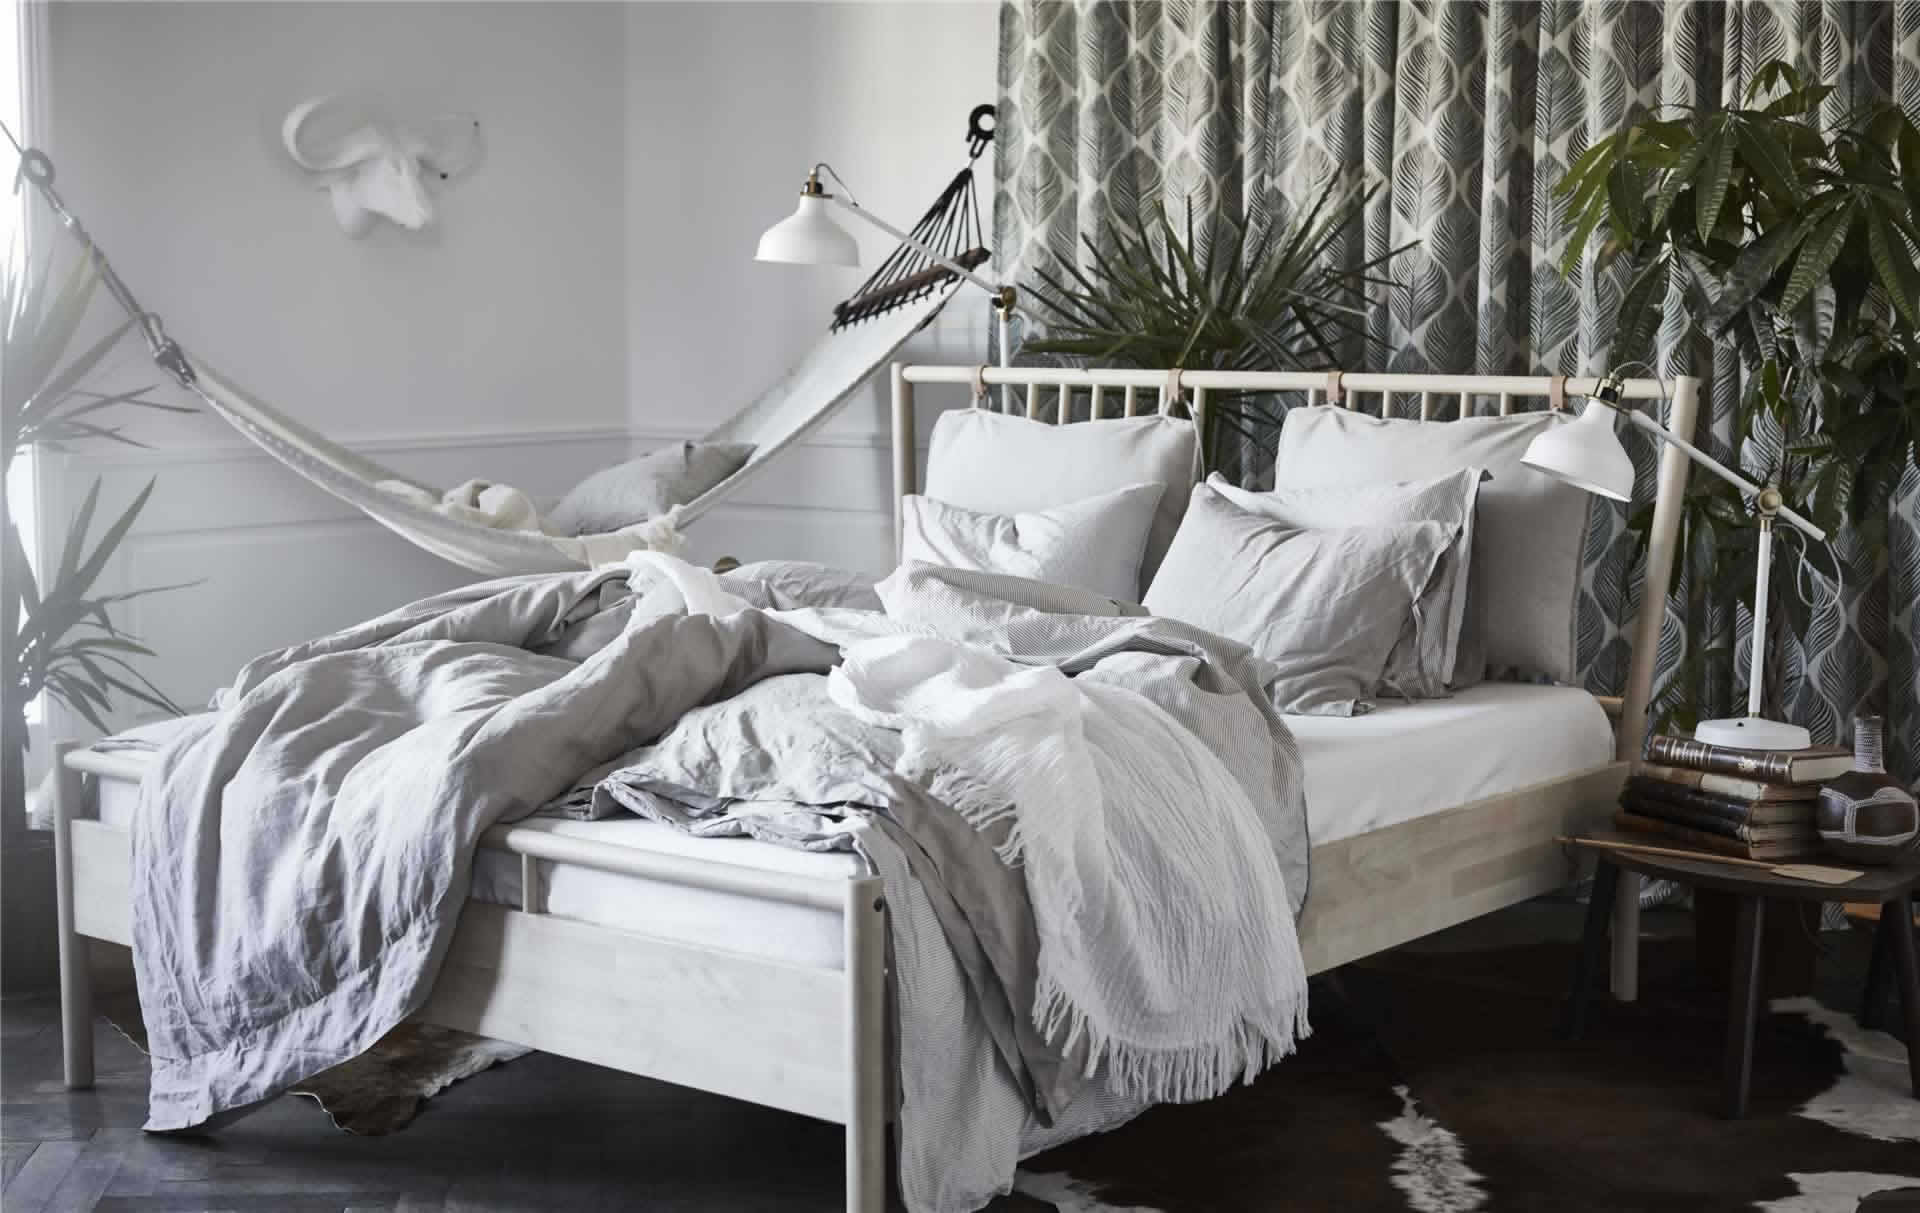 IKEA Ideas - 3 bedrooms designed to start the day right